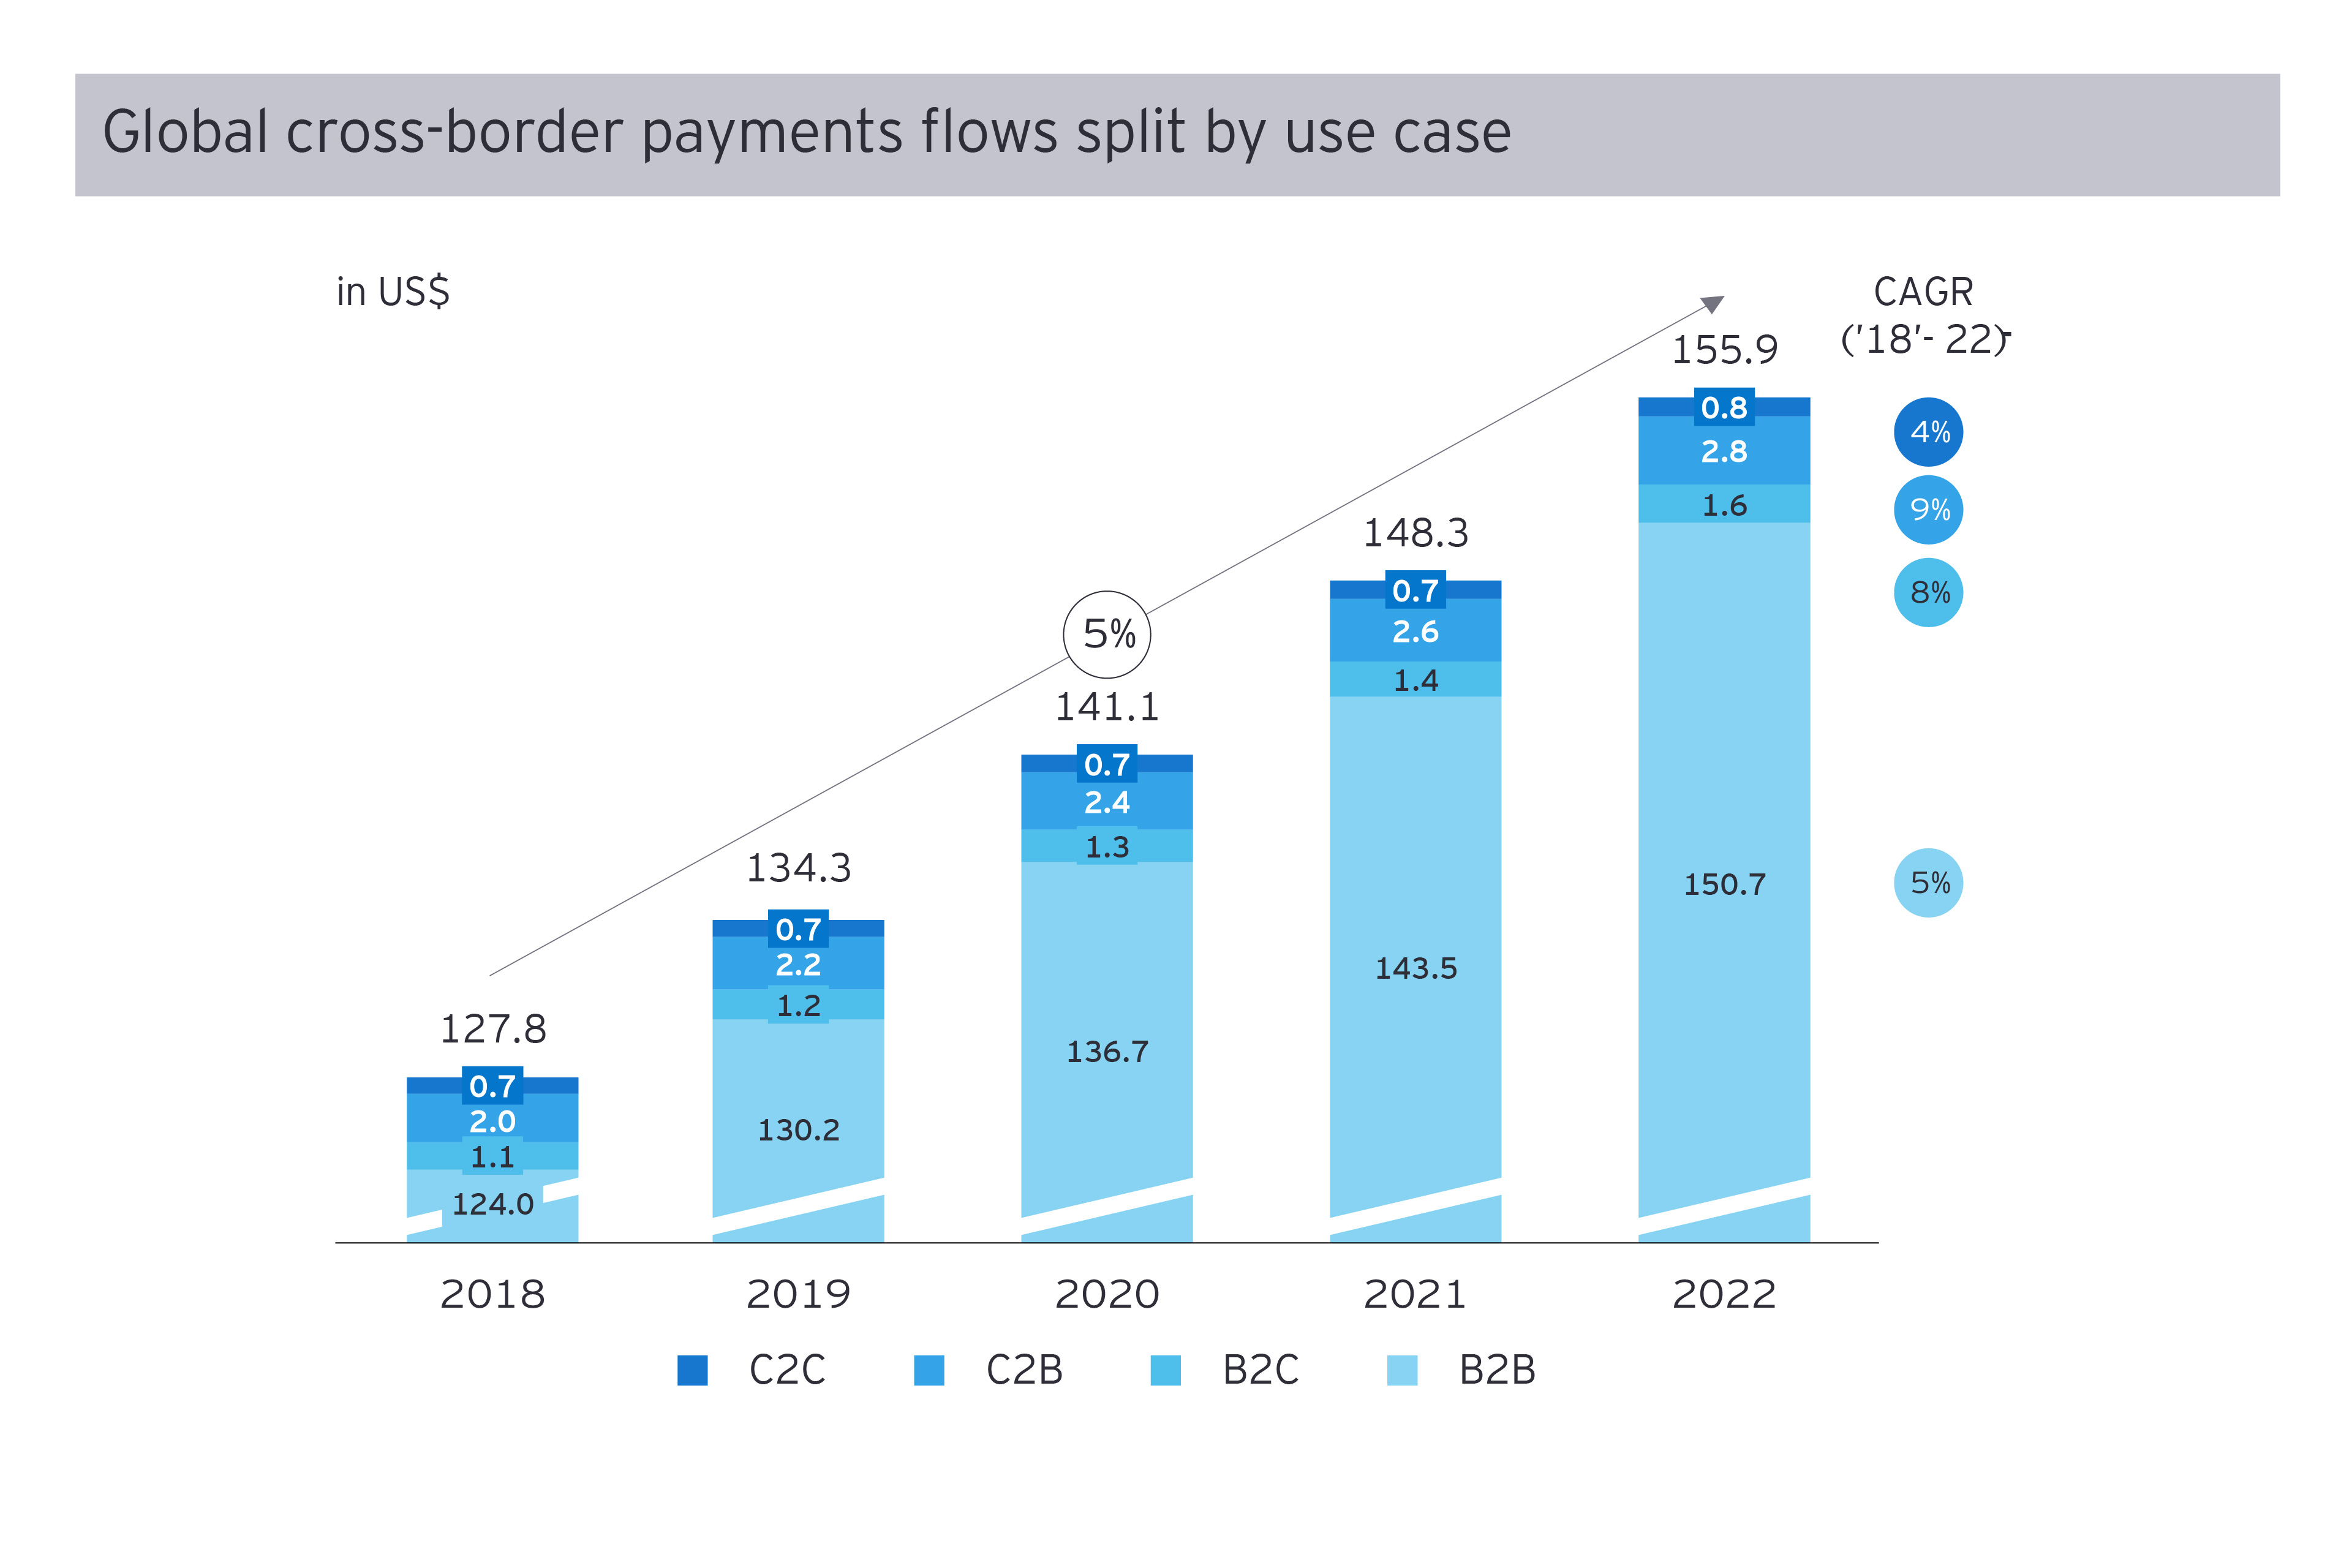 Global across border payments flows split by use case